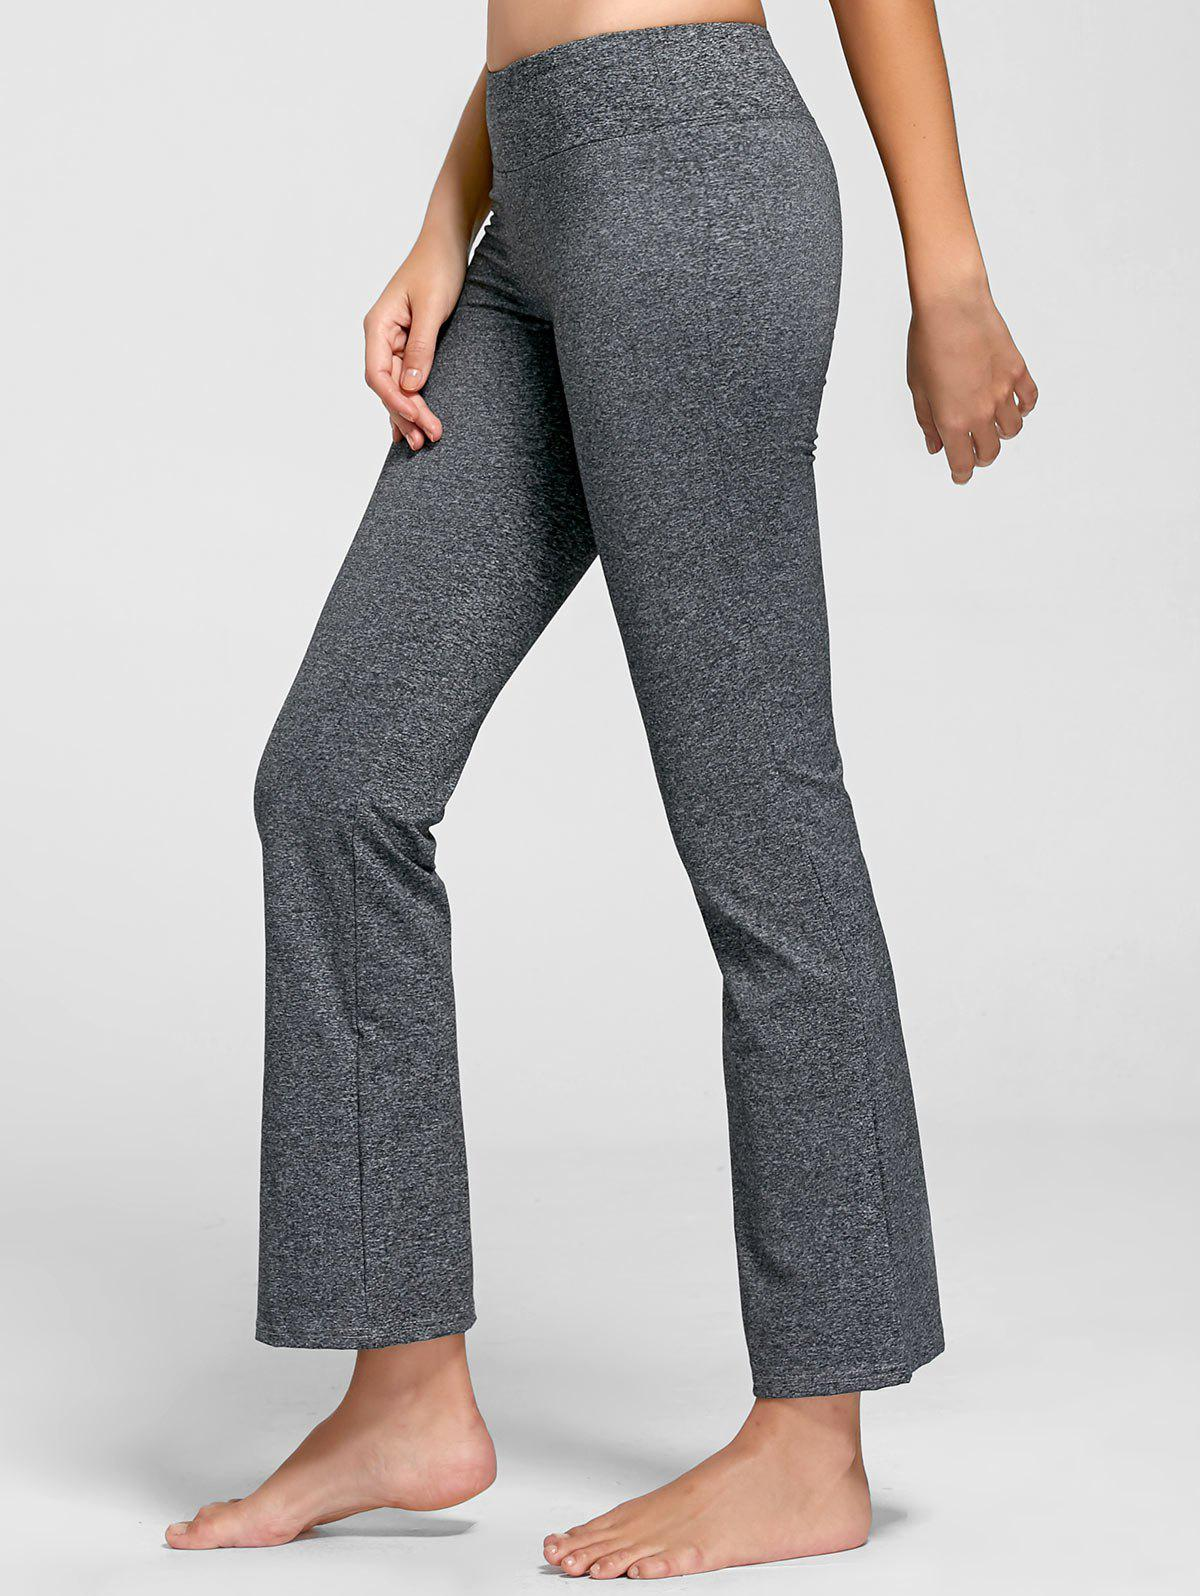 Marled Bell Bottom Yoga Pants - GRAY M